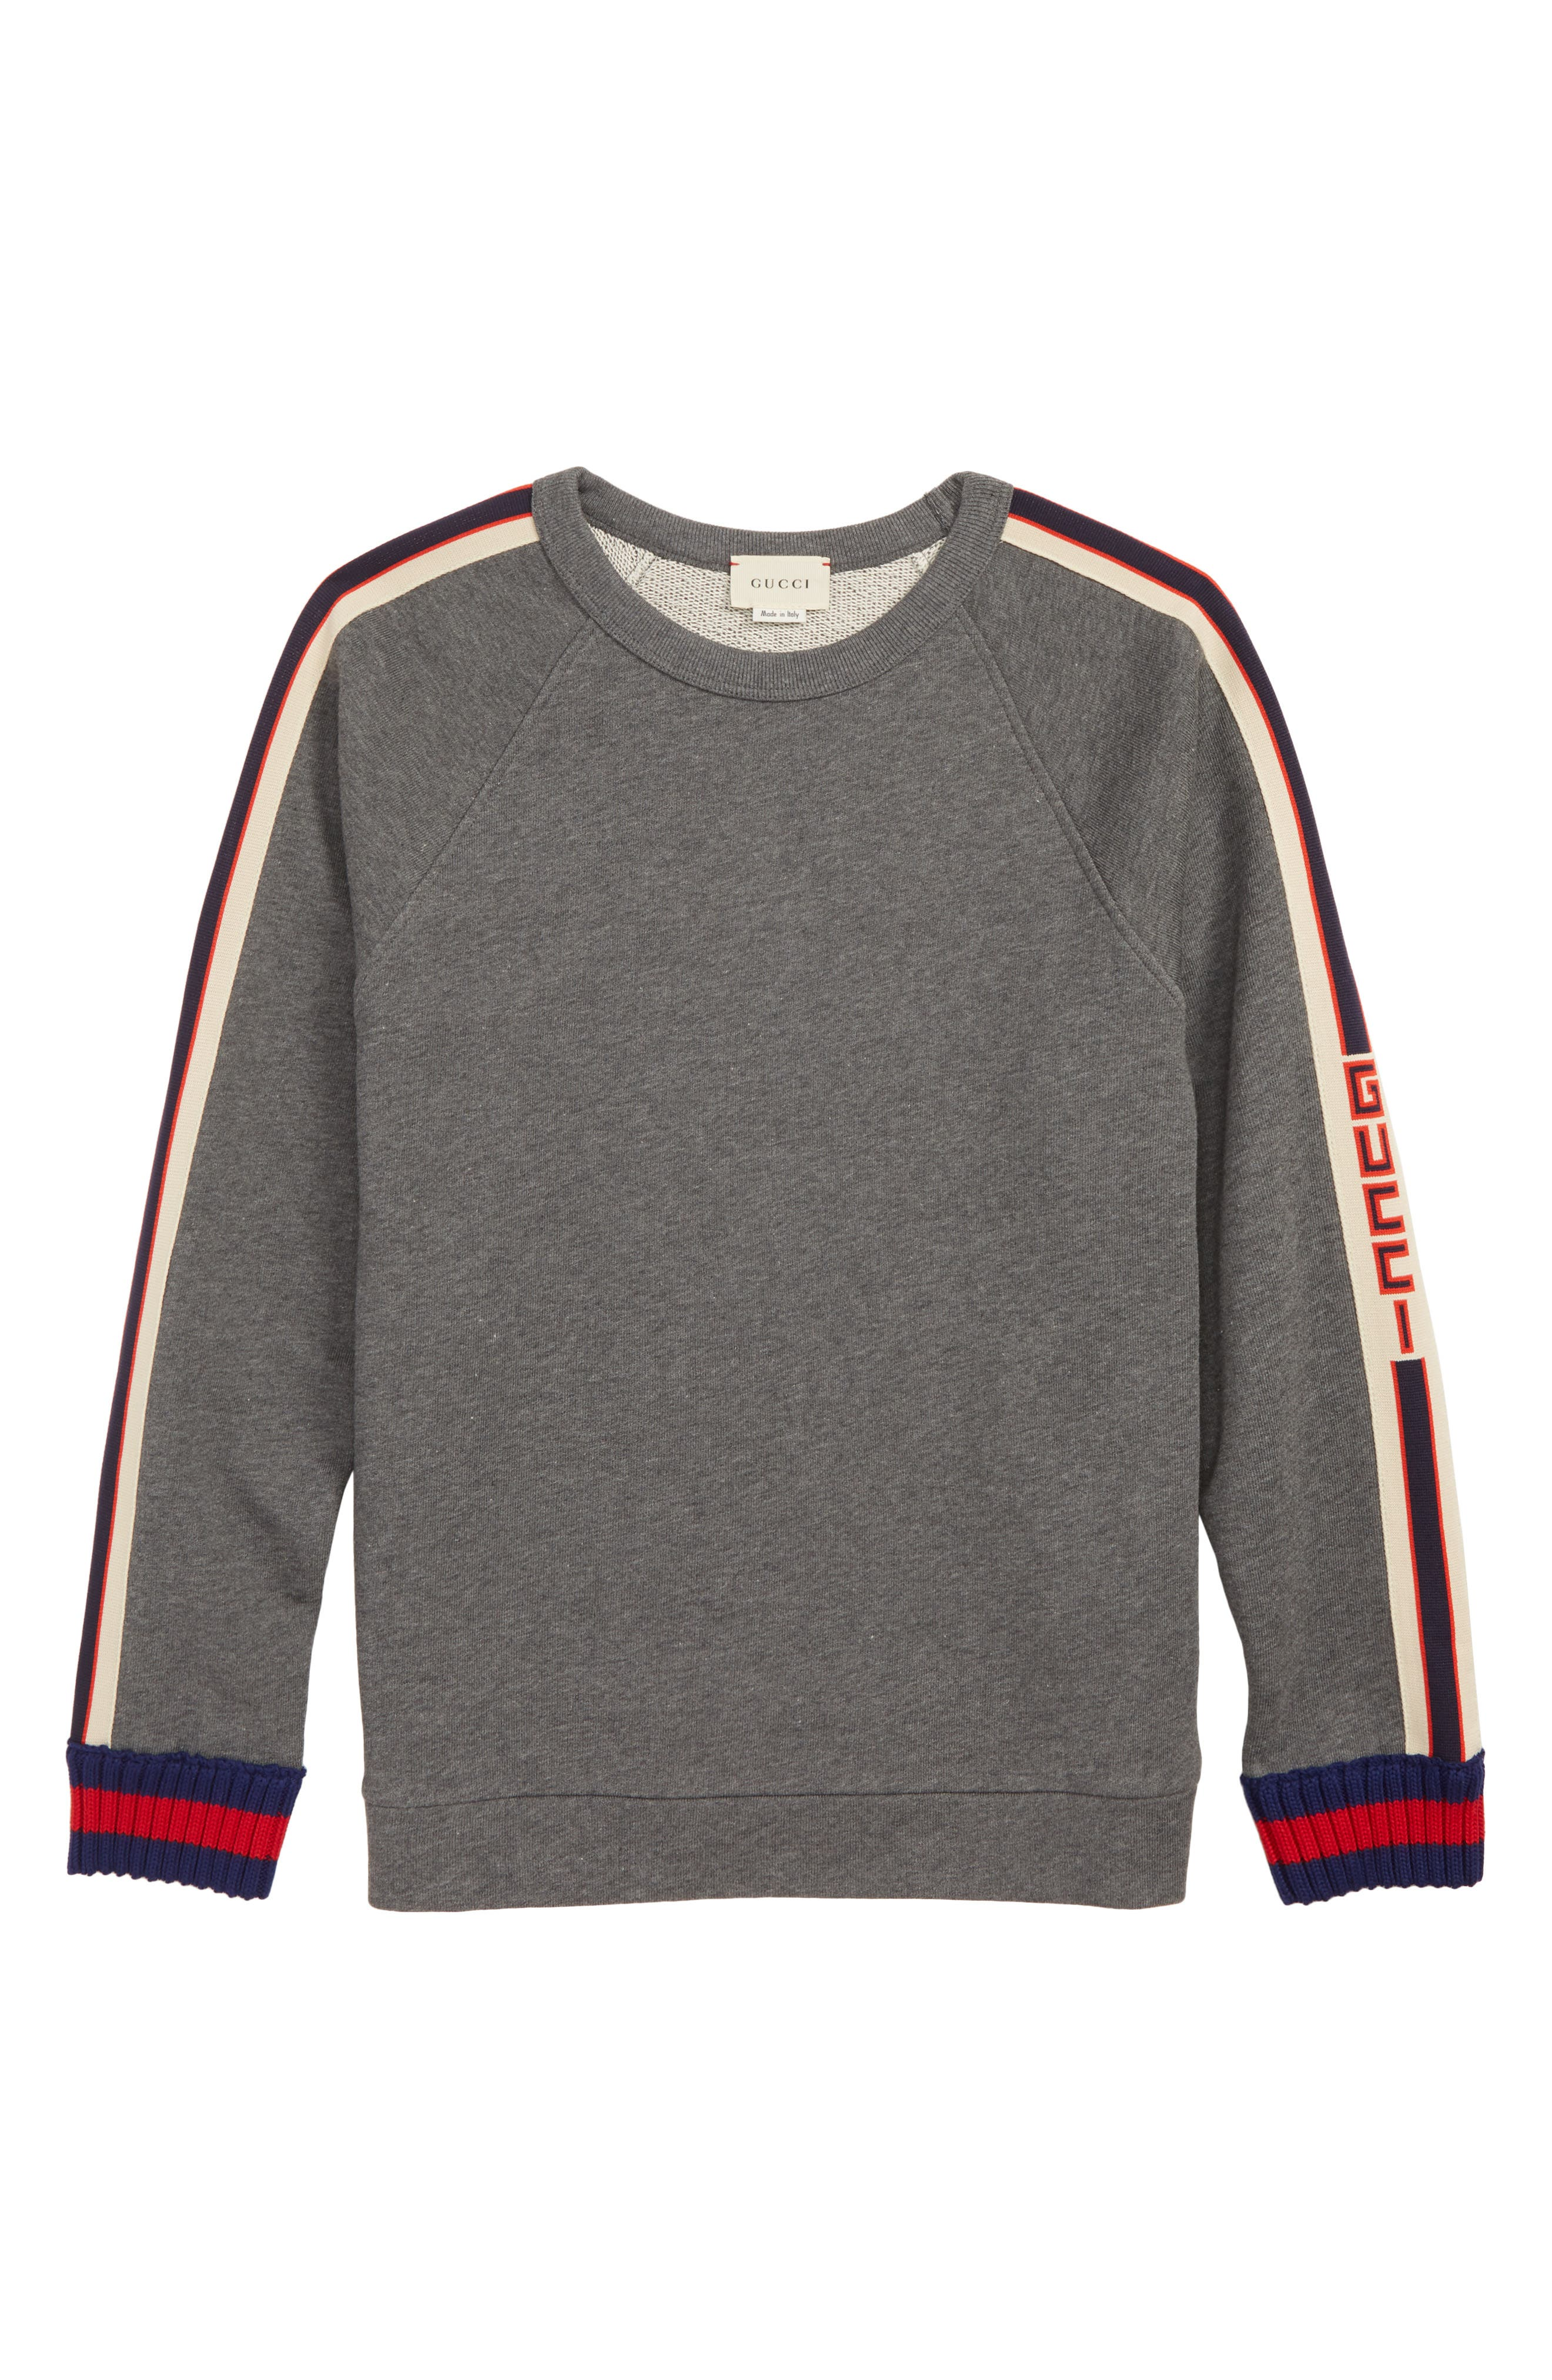 Stripe French Terry Sweatshirt,                             Main thumbnail 1, color,                             MD GREY/ COBALT/ RED